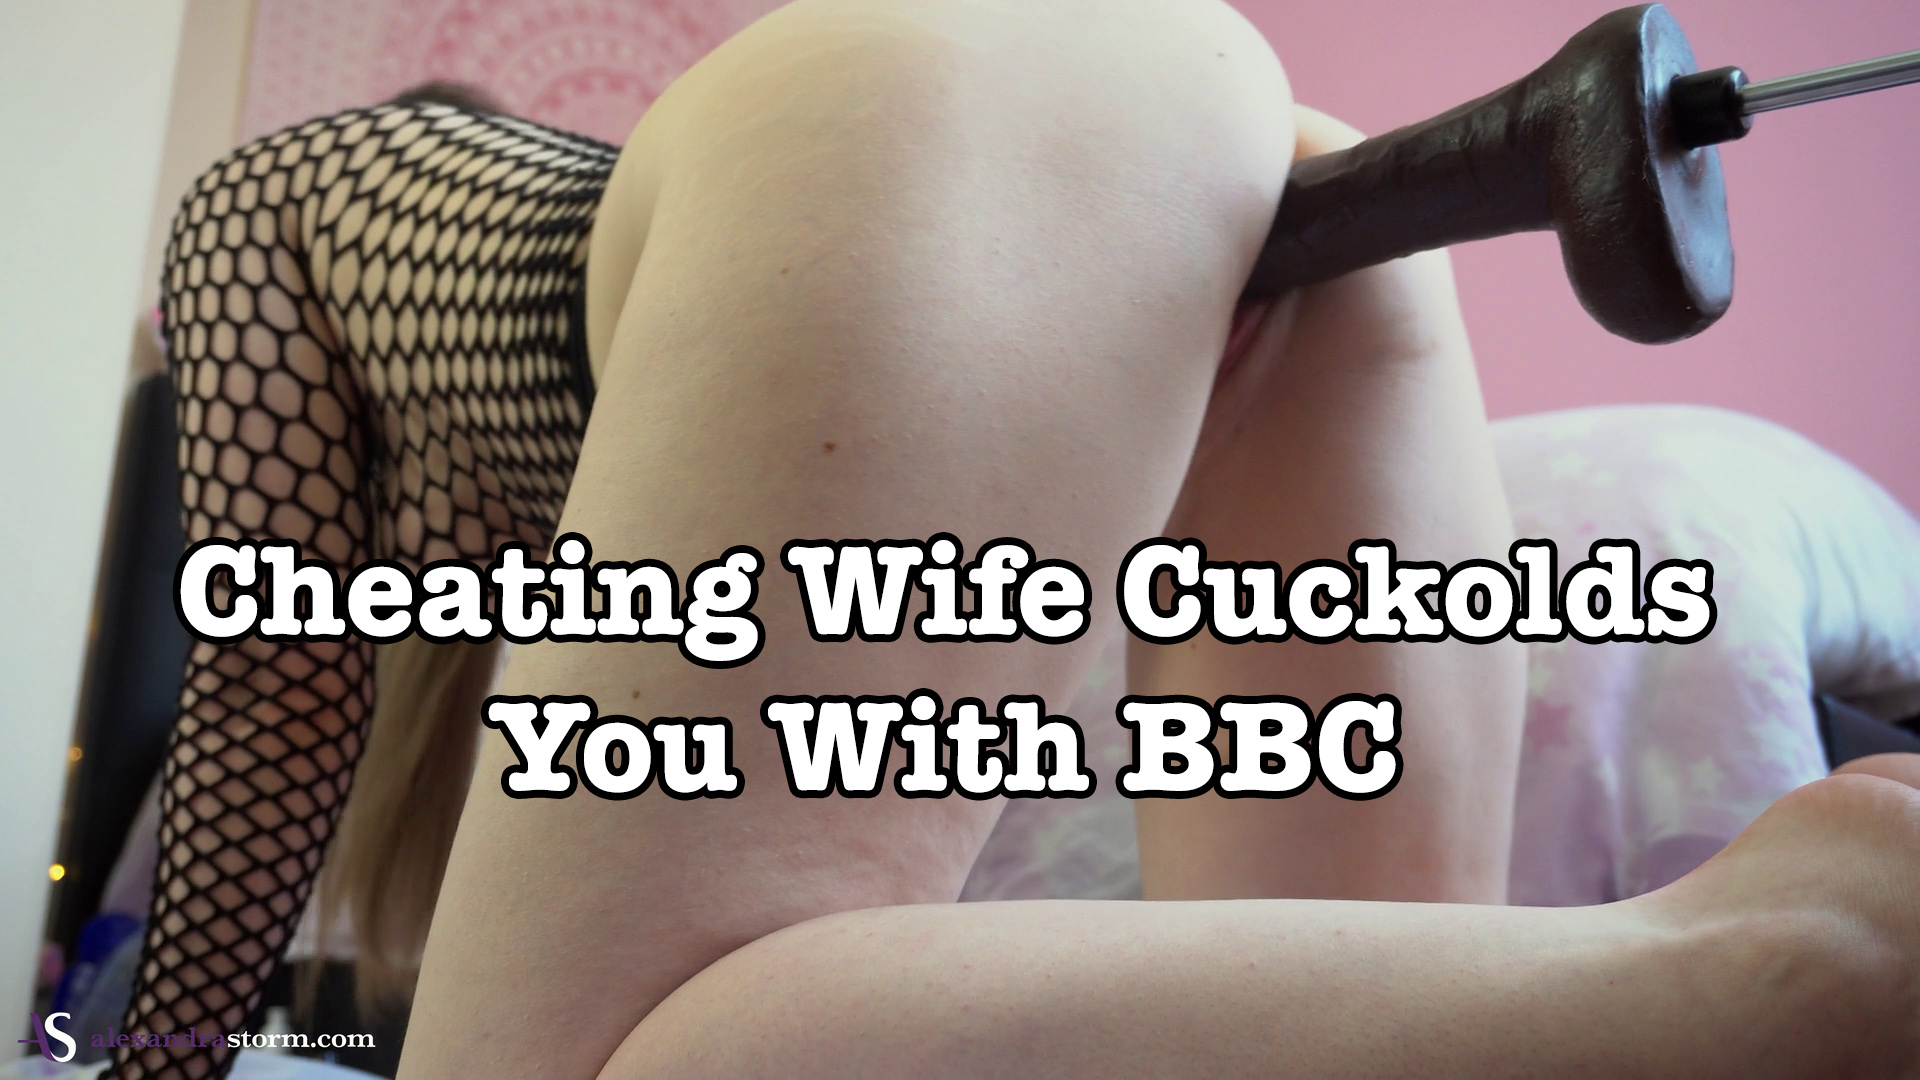 Cheating Wife Cuckolds